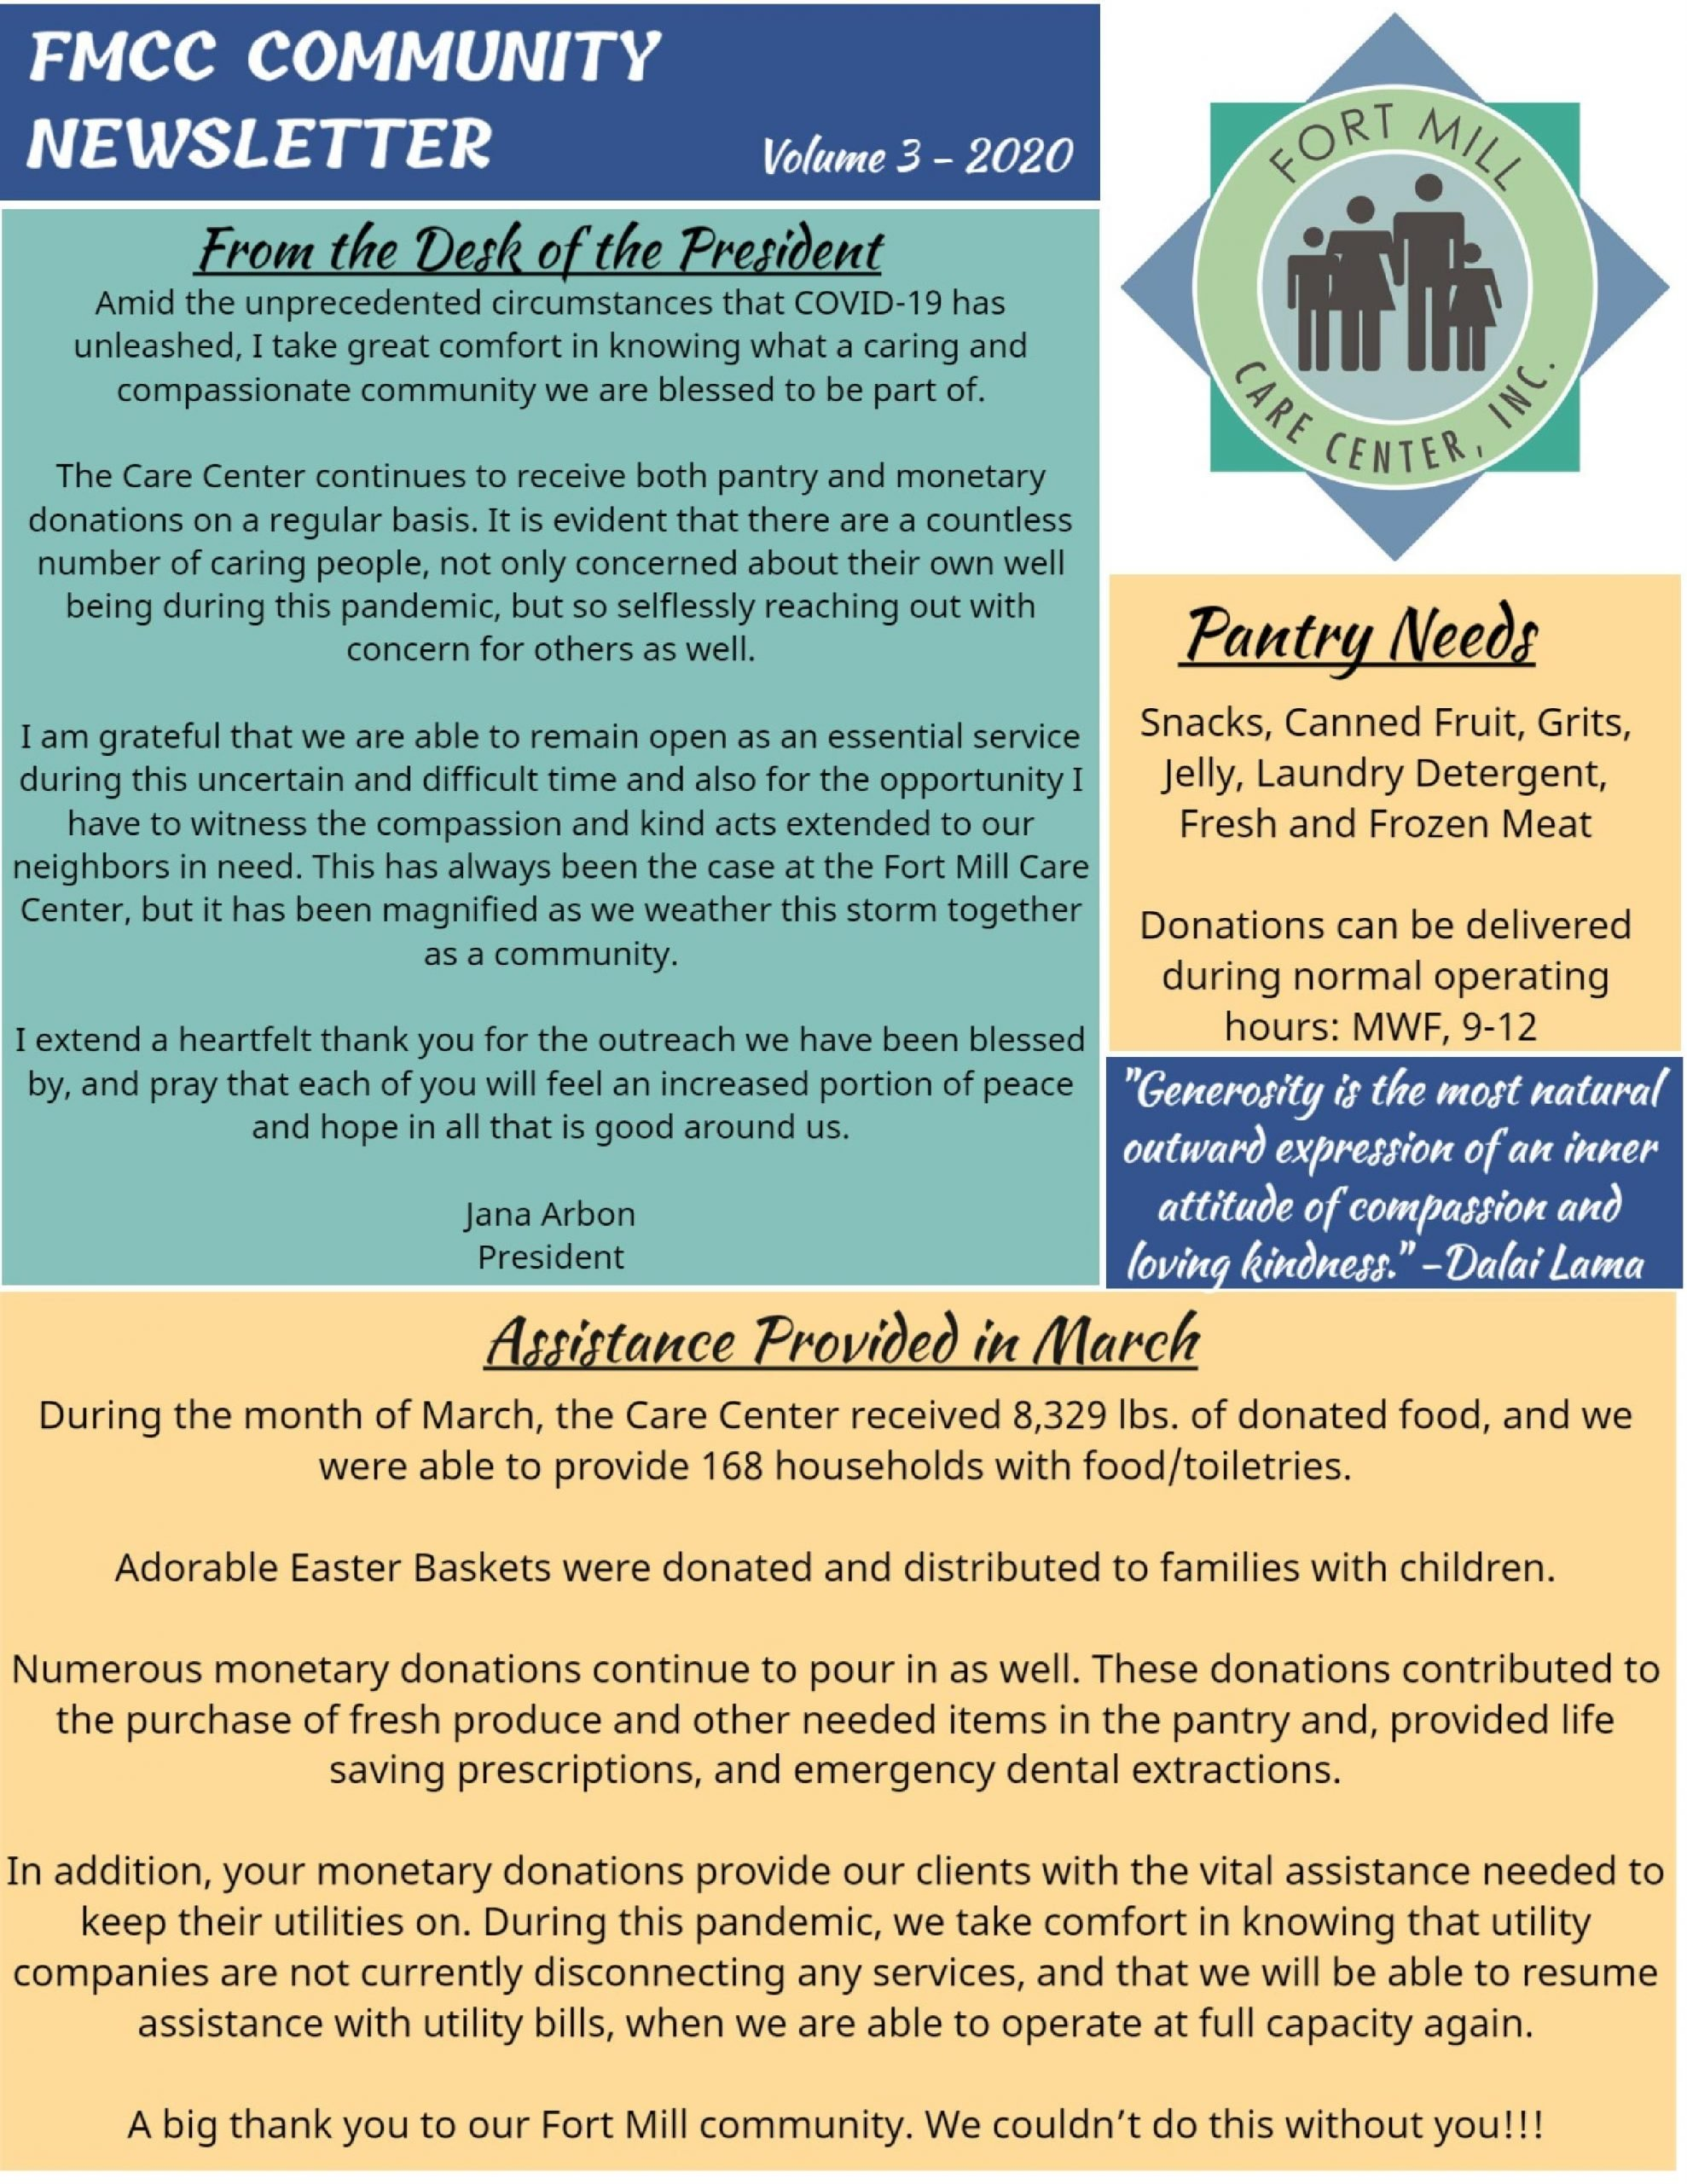 Fort Mill Care Center Community Newsletter Volume 3